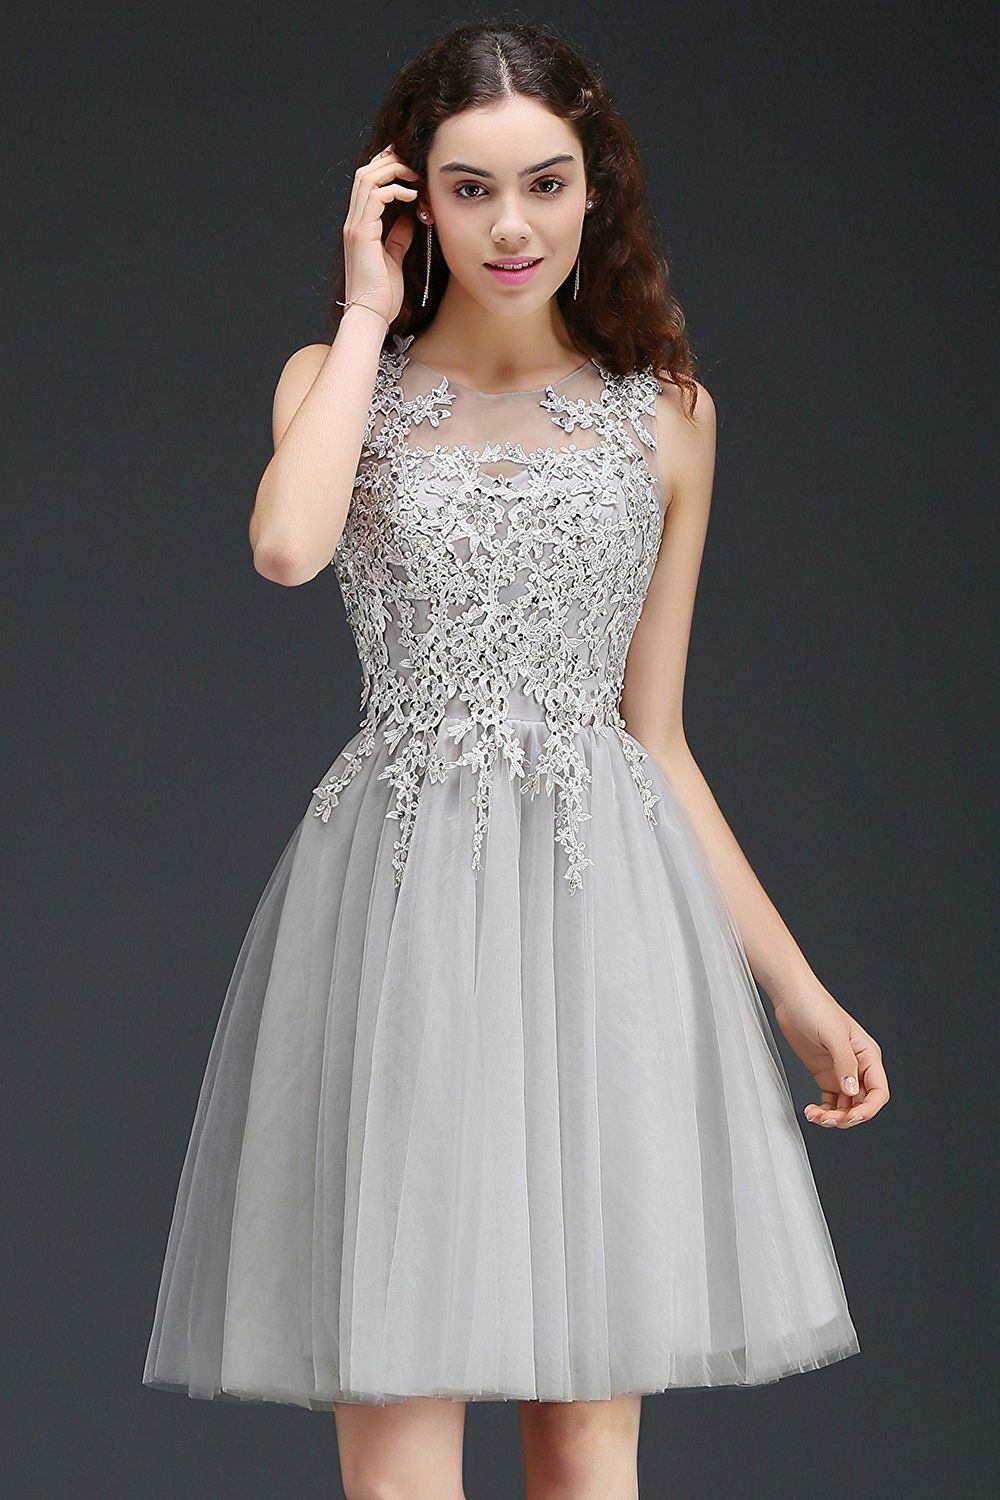 e626d0f7274 MisShow Women s Beading Lace Homecoming Dresses 2017 Short Prom Gowns